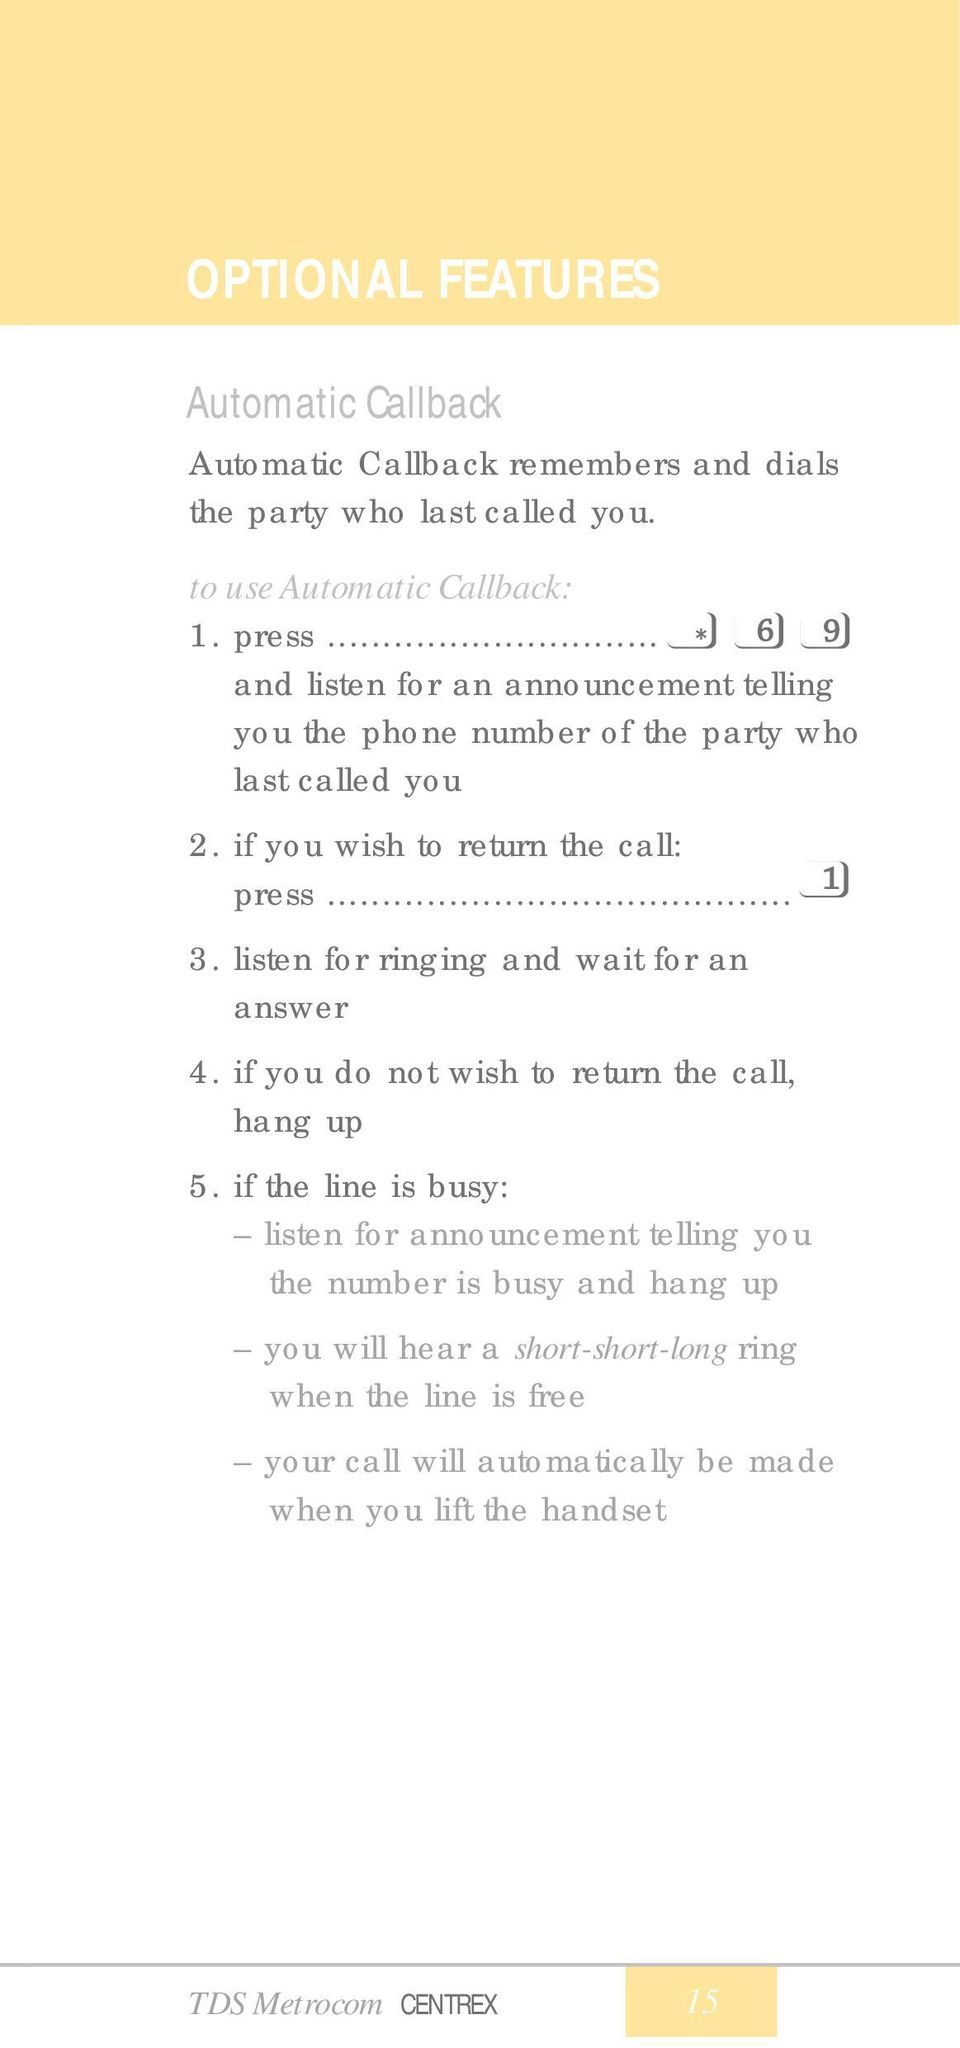 listen for ringing and wait for an answer 4. if you do not wish to return the call, hang up 5.